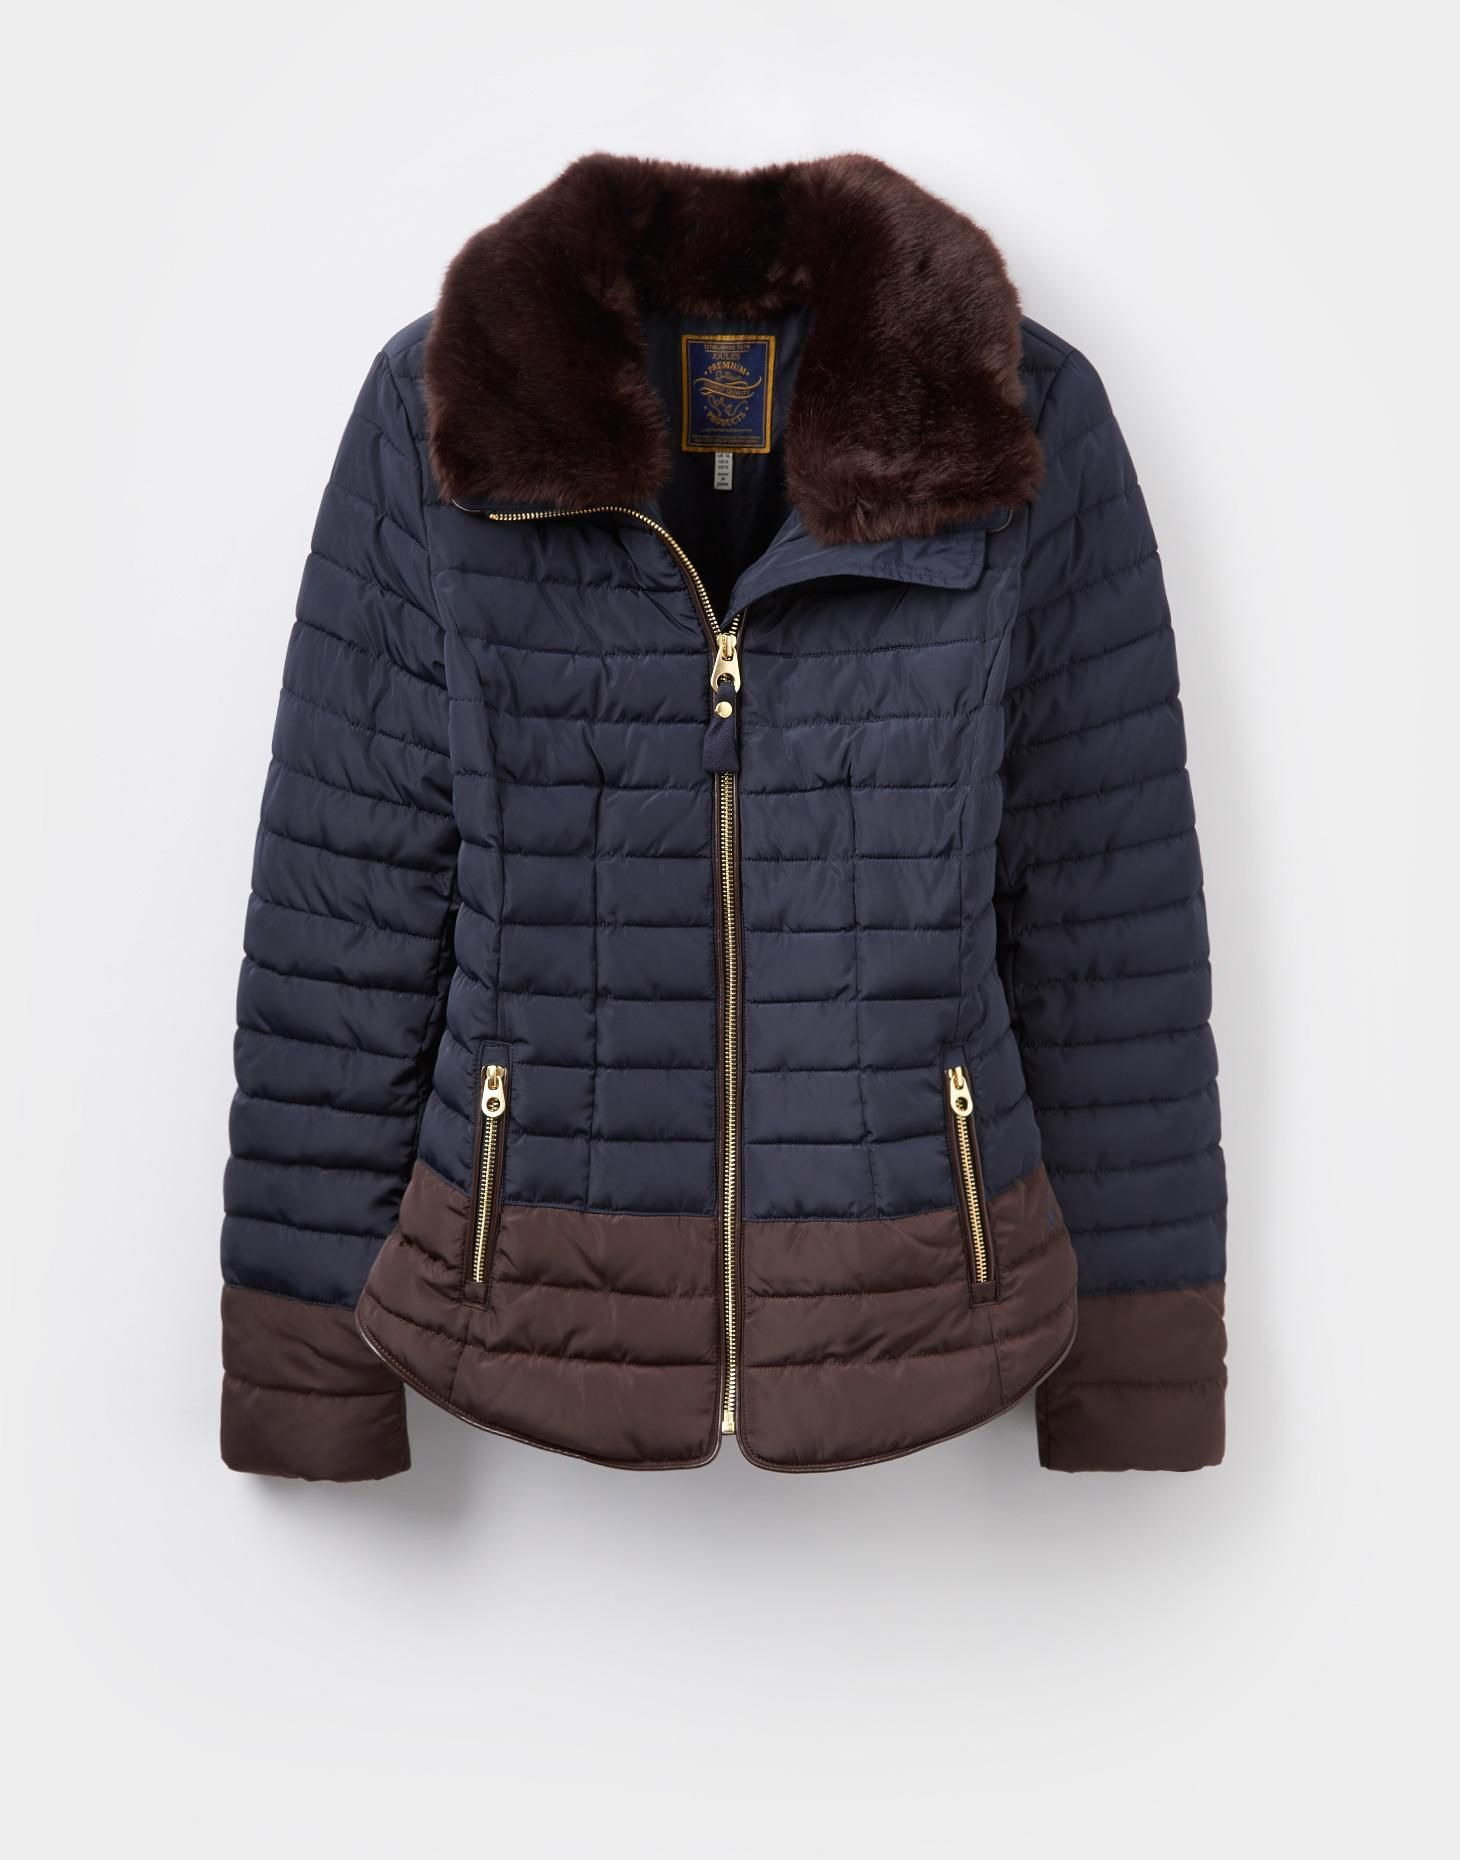 Gosfield Marine Navy Padded Jacket | Joules UK | Style Me Pretty ... : joules quilted jacket sale - Adamdwight.com